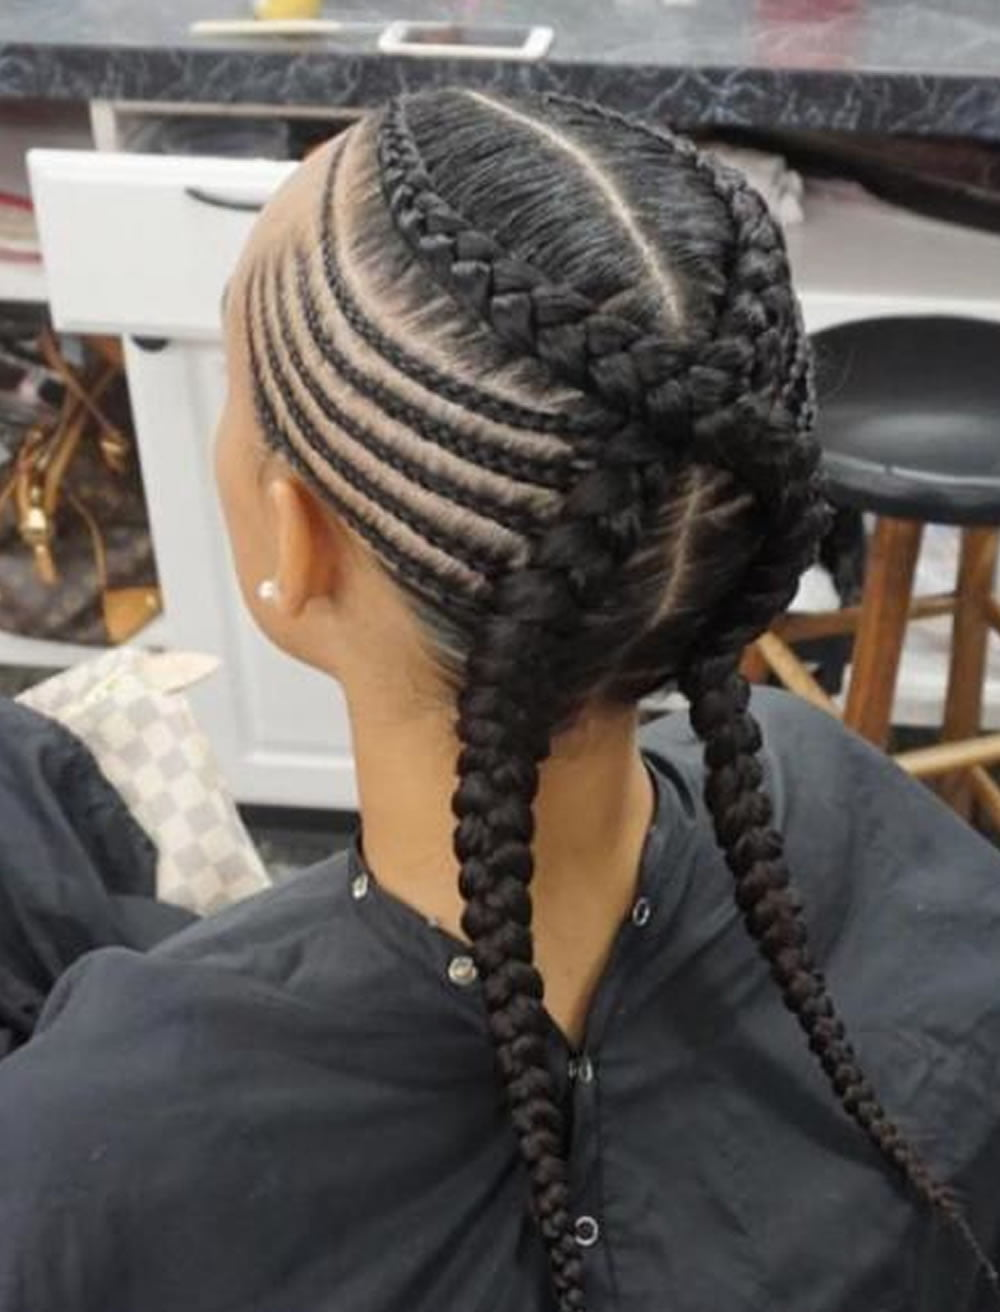 20 Best African American Braided Hairstyles for Women 2017-2018 - Page 2 - HAIRSTYLES